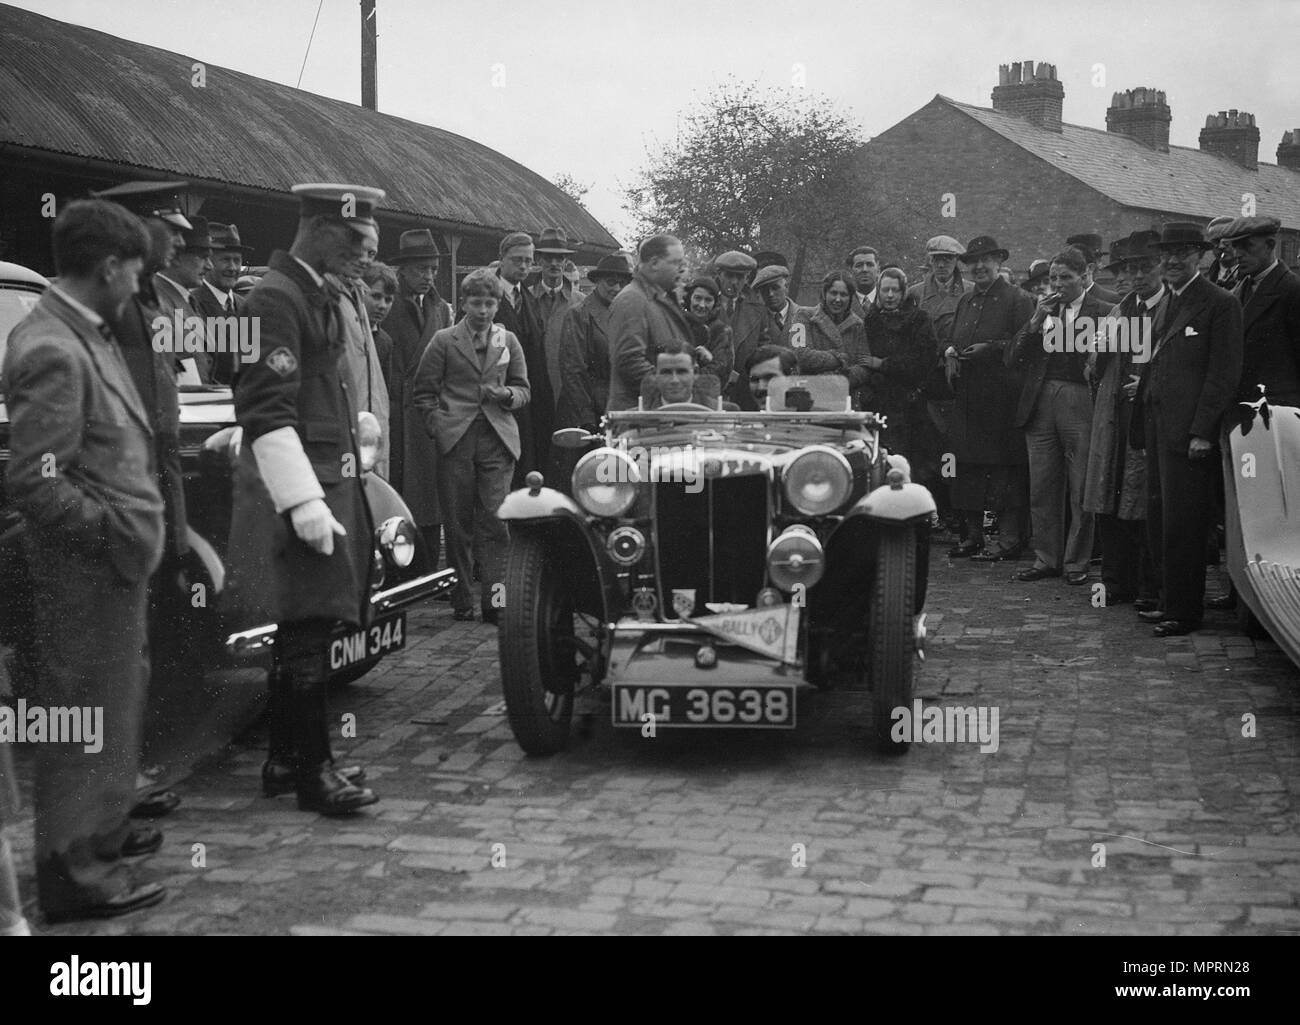 mg pa of ac sears at the rac rally 1939 artist bill brunell stock